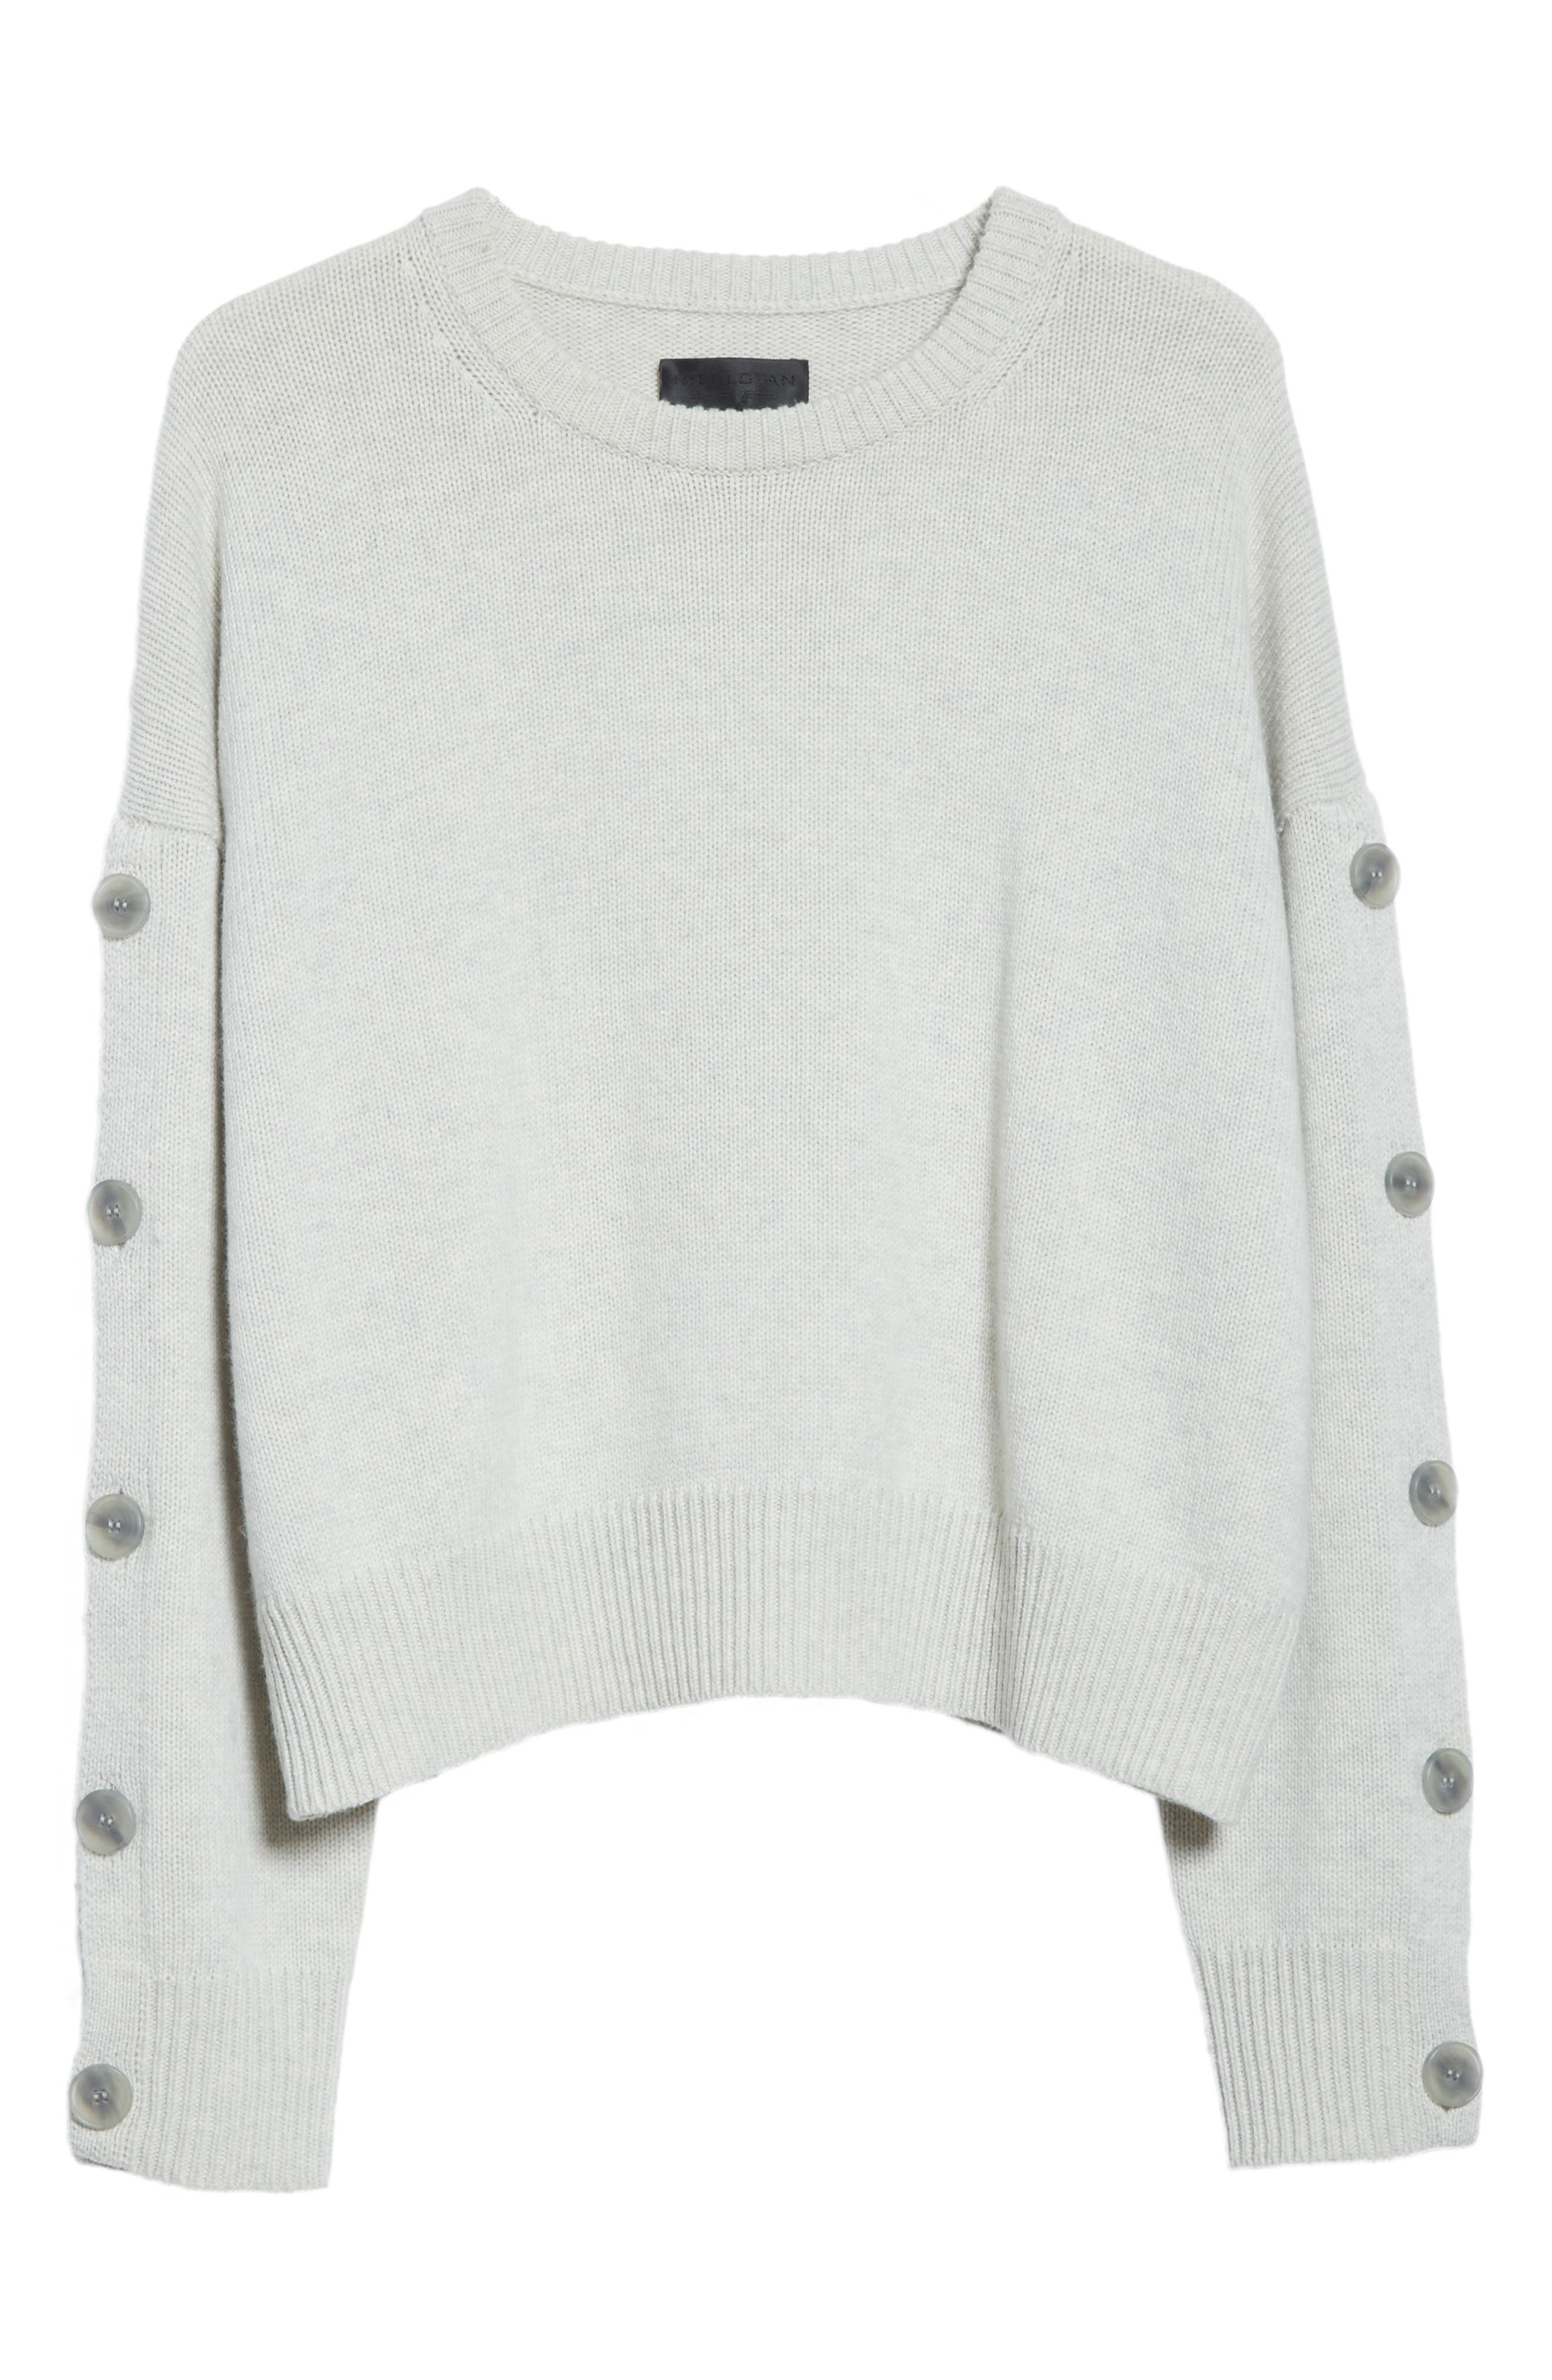 Martina Wool & Cashmere Sweater,                             Alternate thumbnail 6, color,                             Light Grey